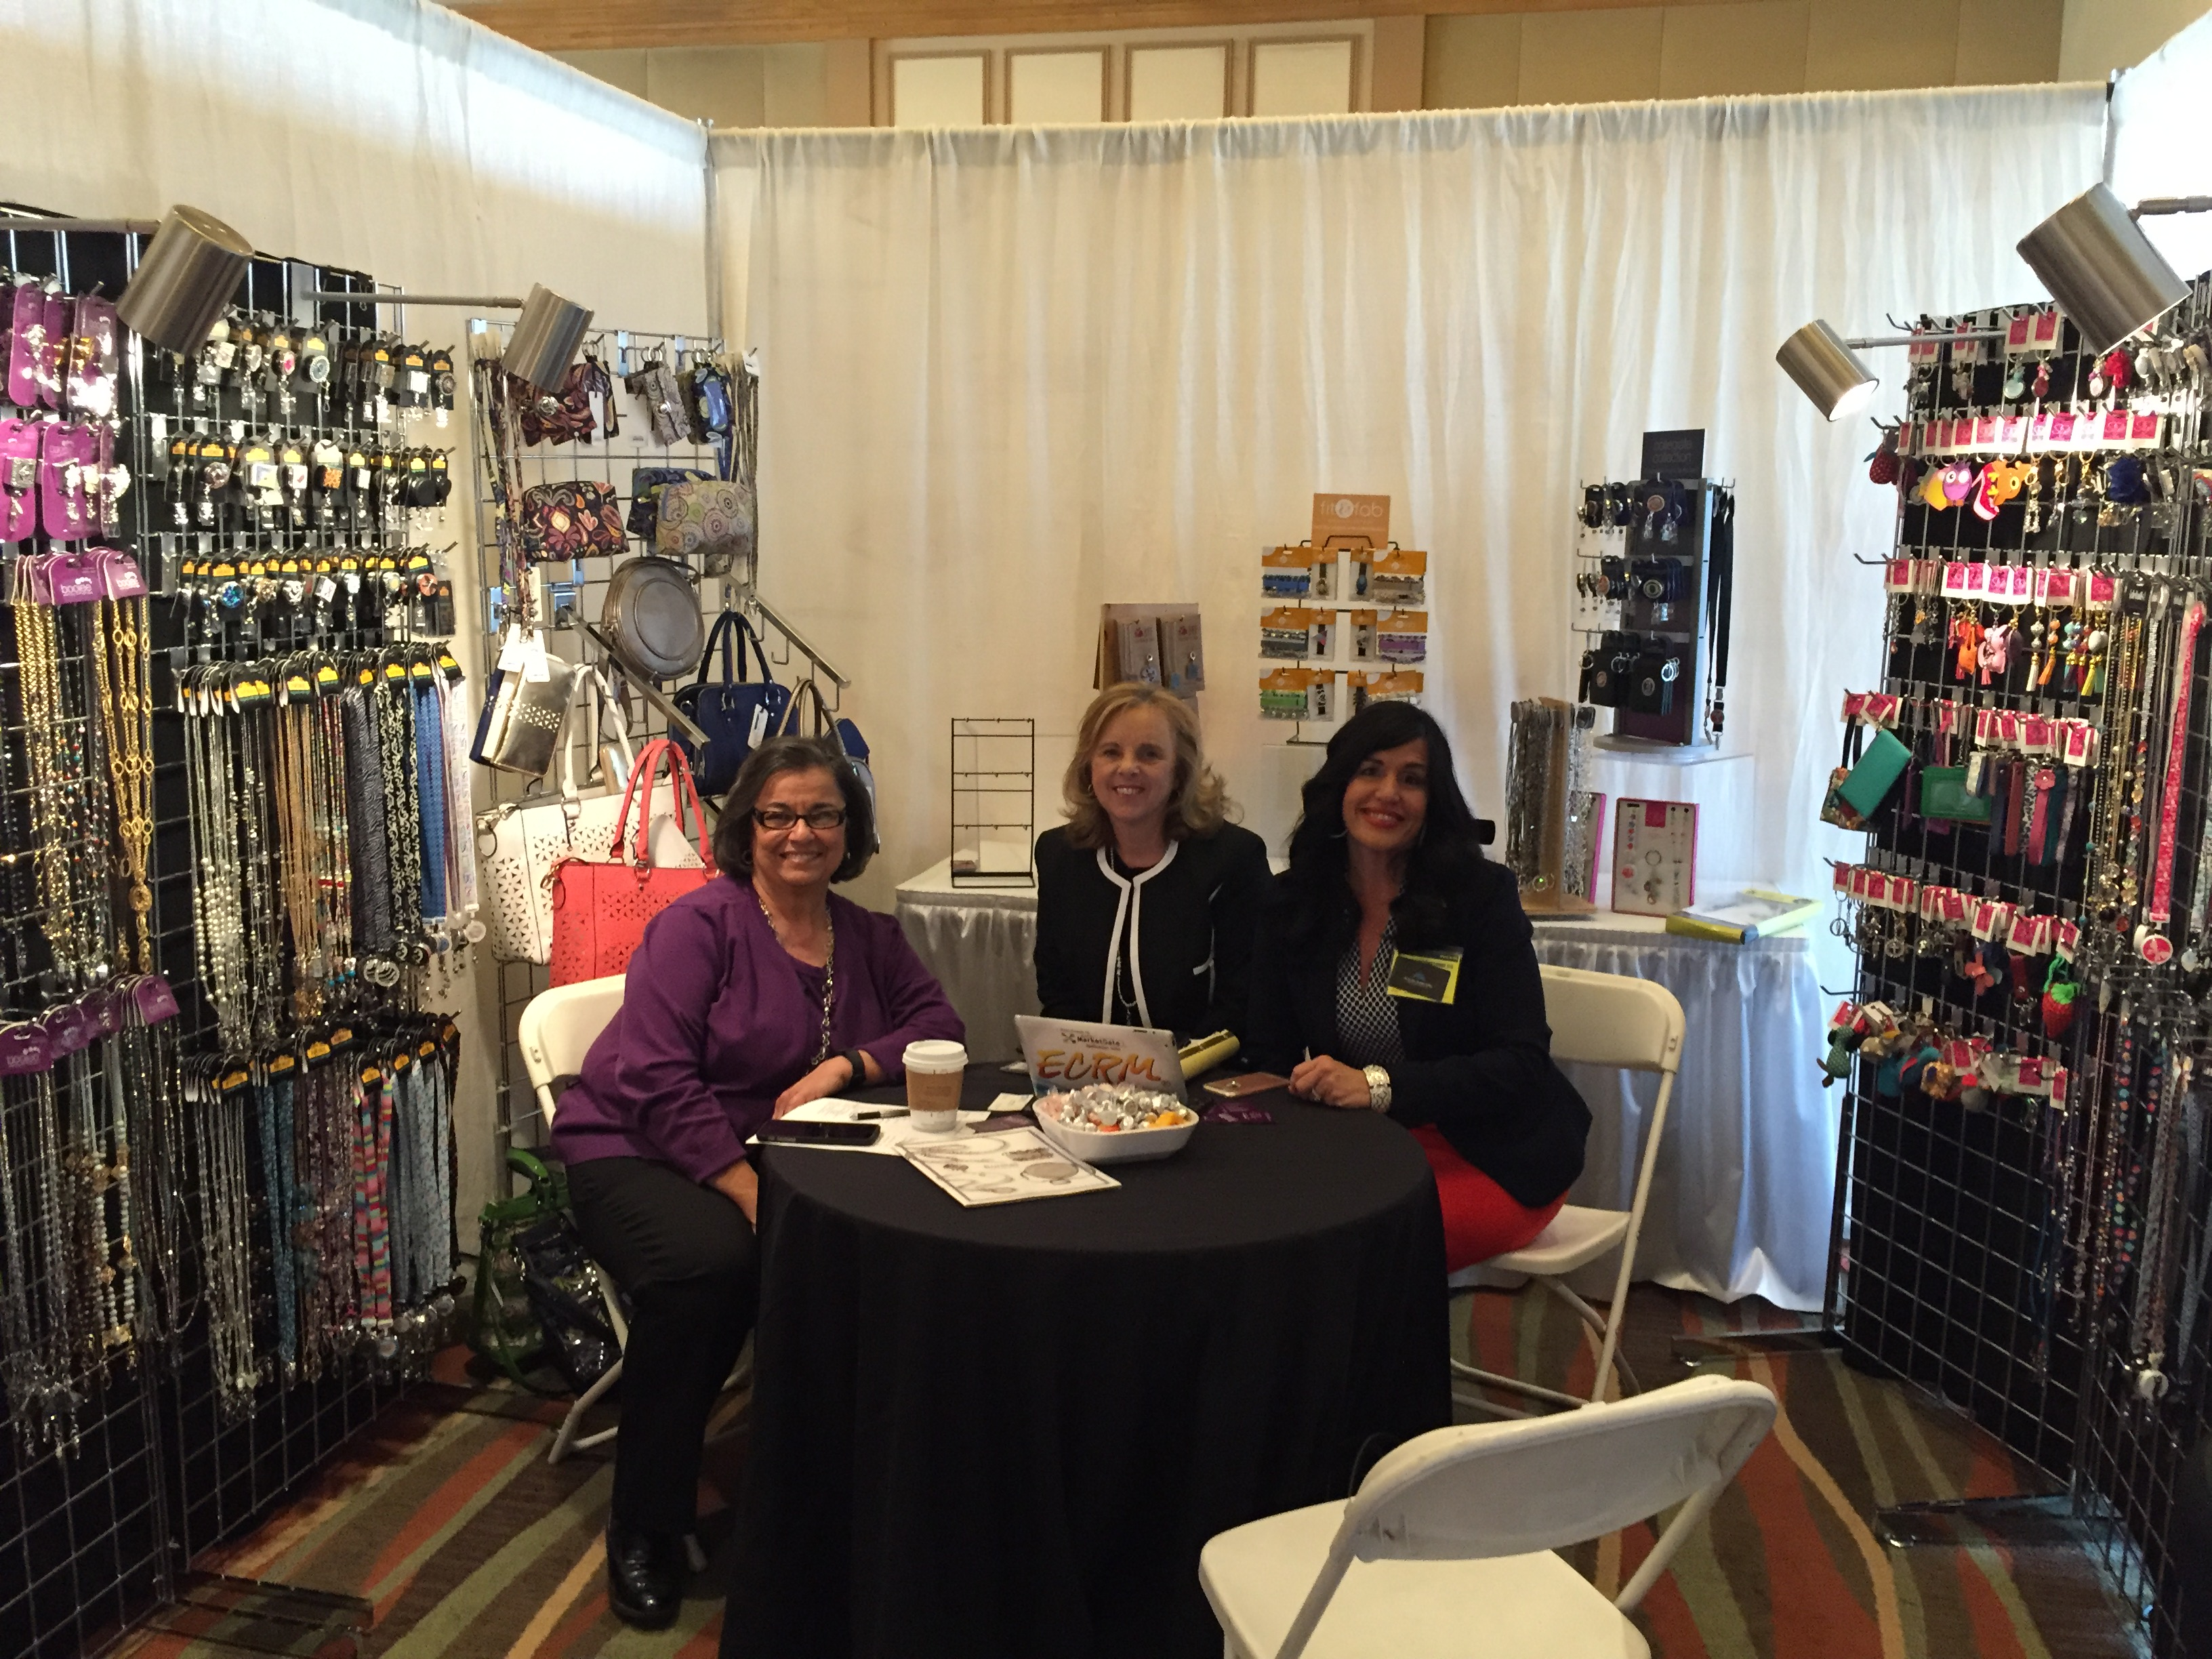 Home & Gift EPPS: Bonitas International's booth was decked out with fabulous jewelry, accessories and more!